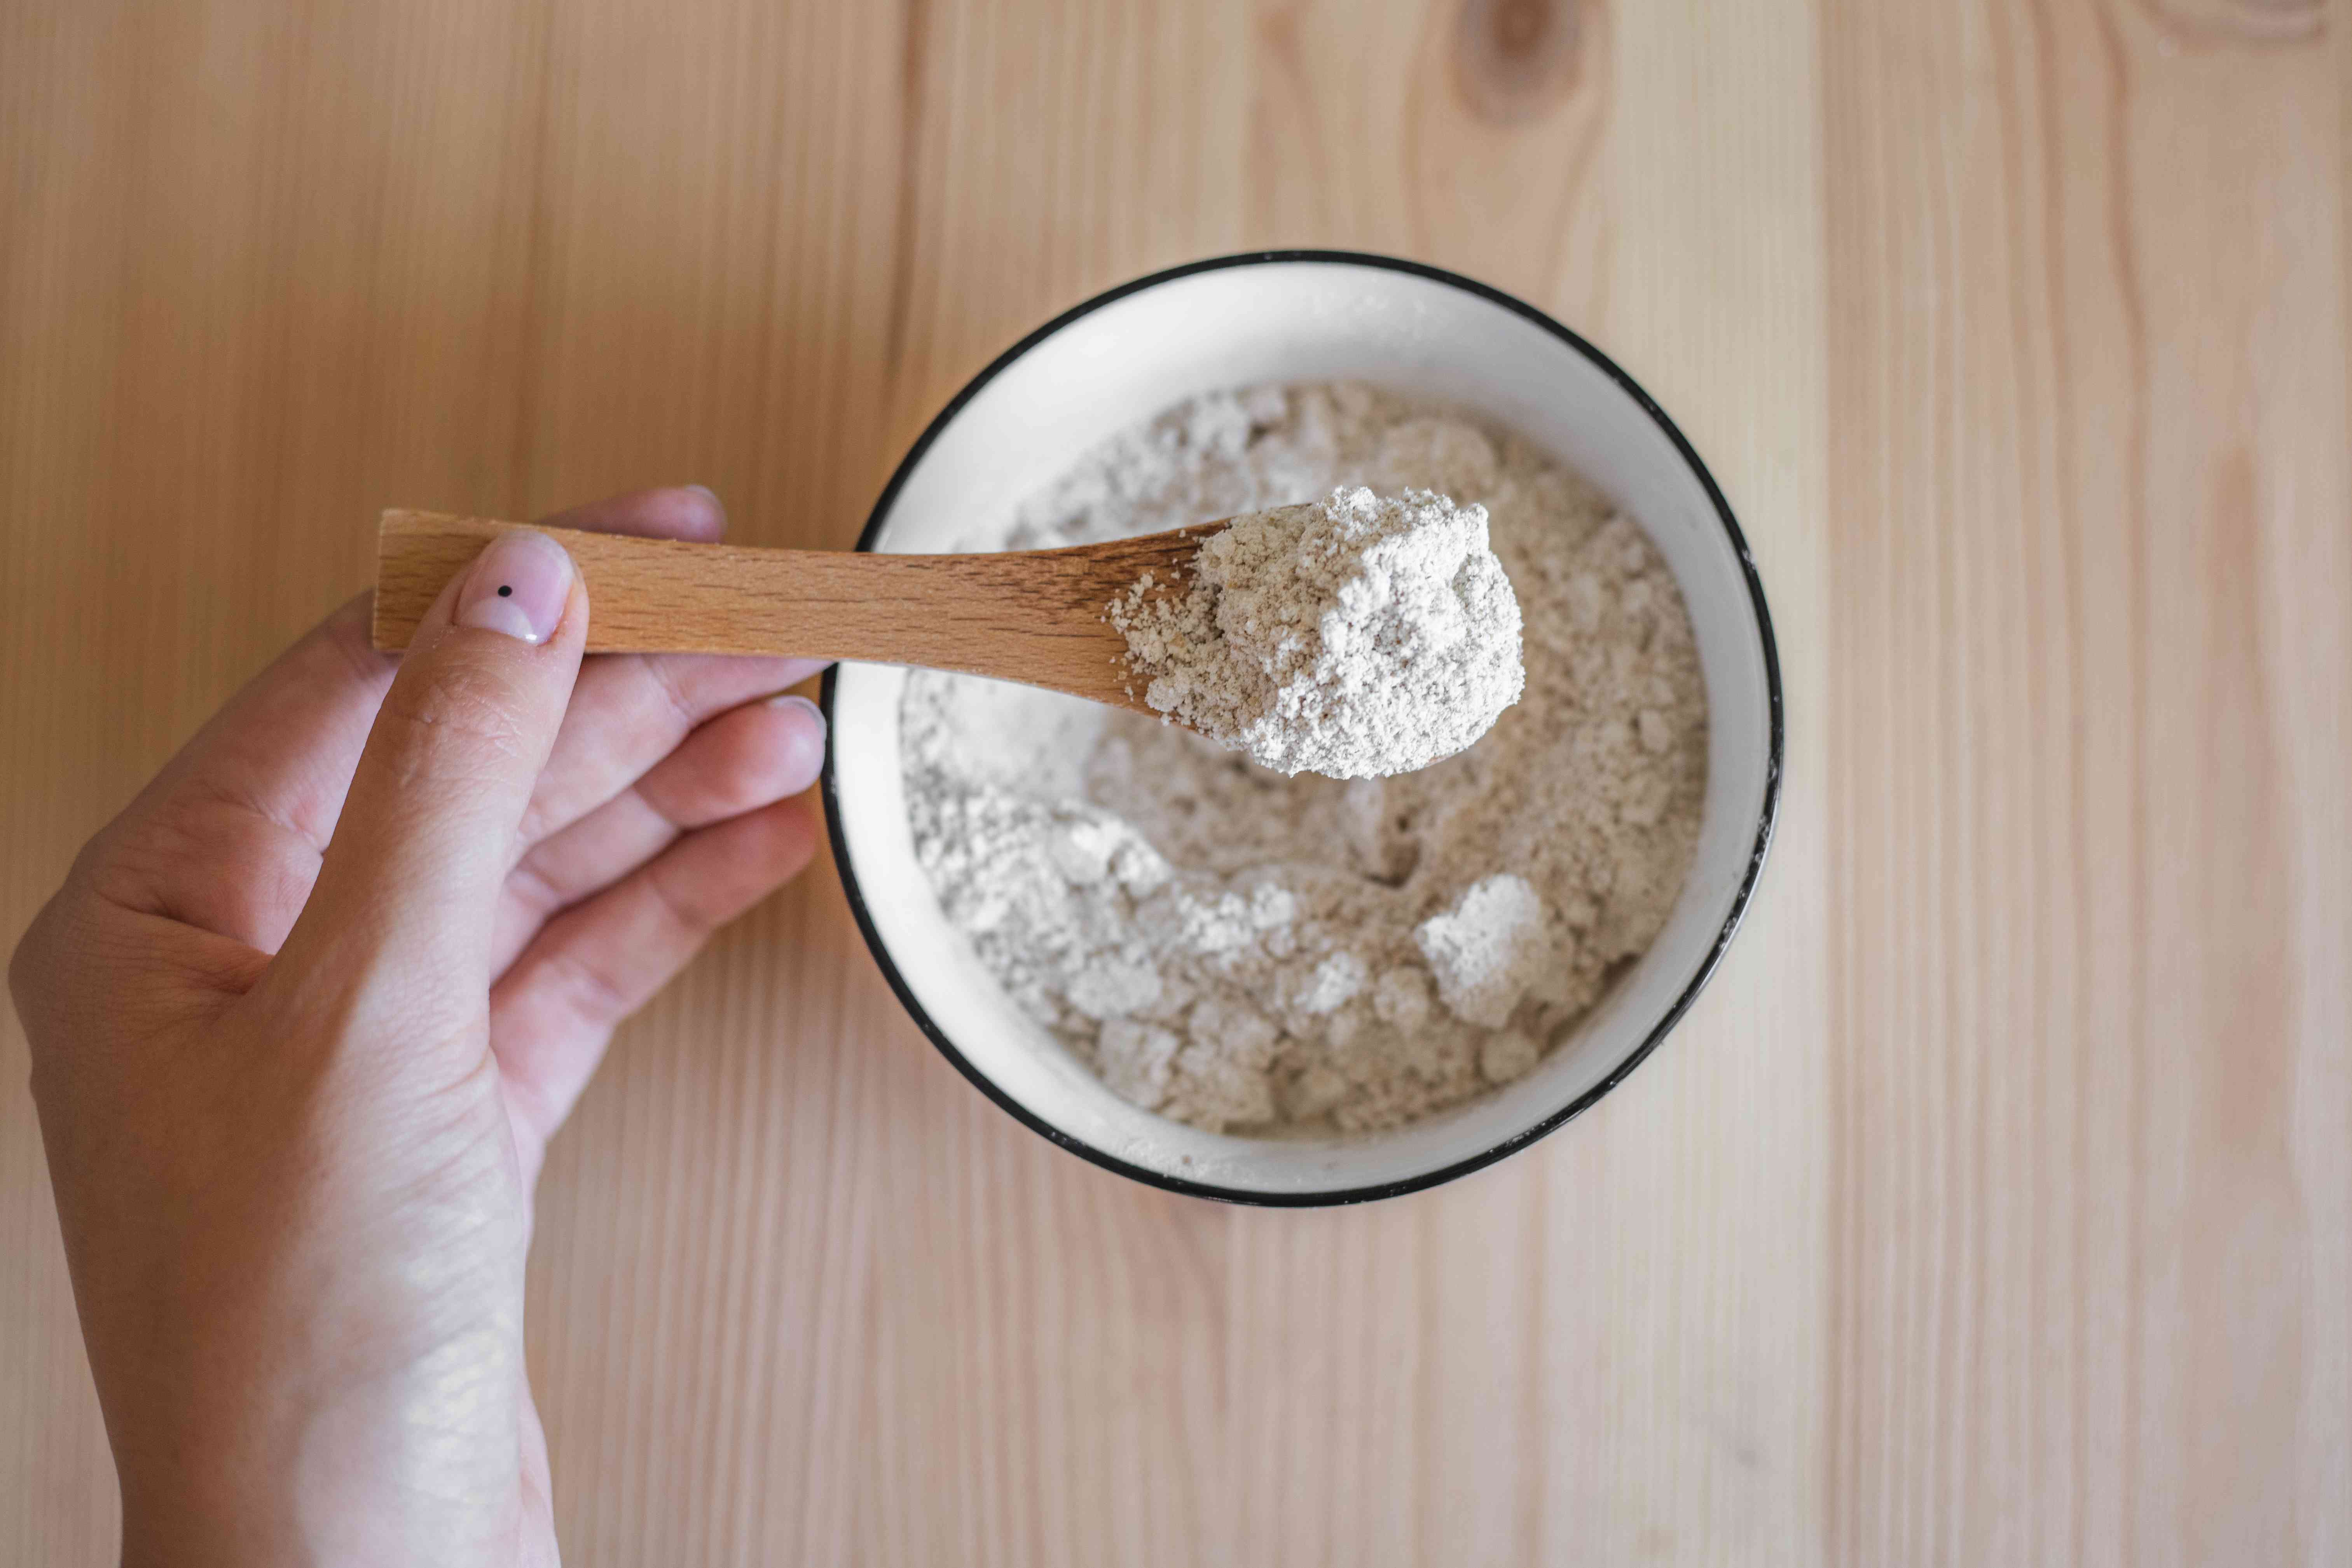 hand holds up wooden spoon filled with smoothly ground colloidal oatmeal